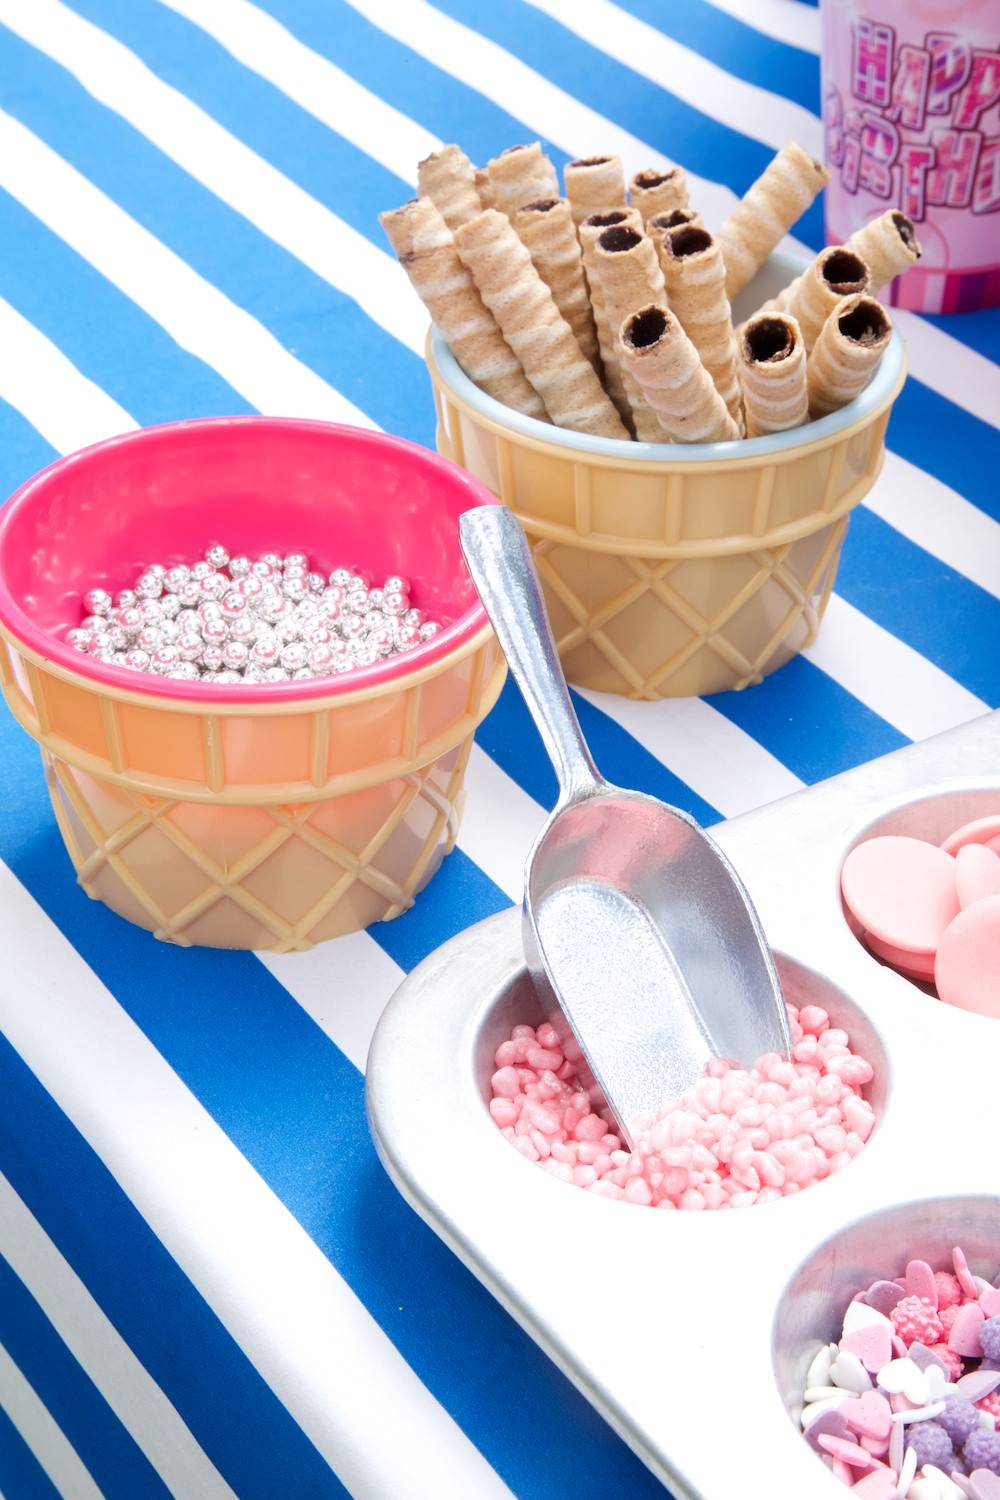 Ice cream stations